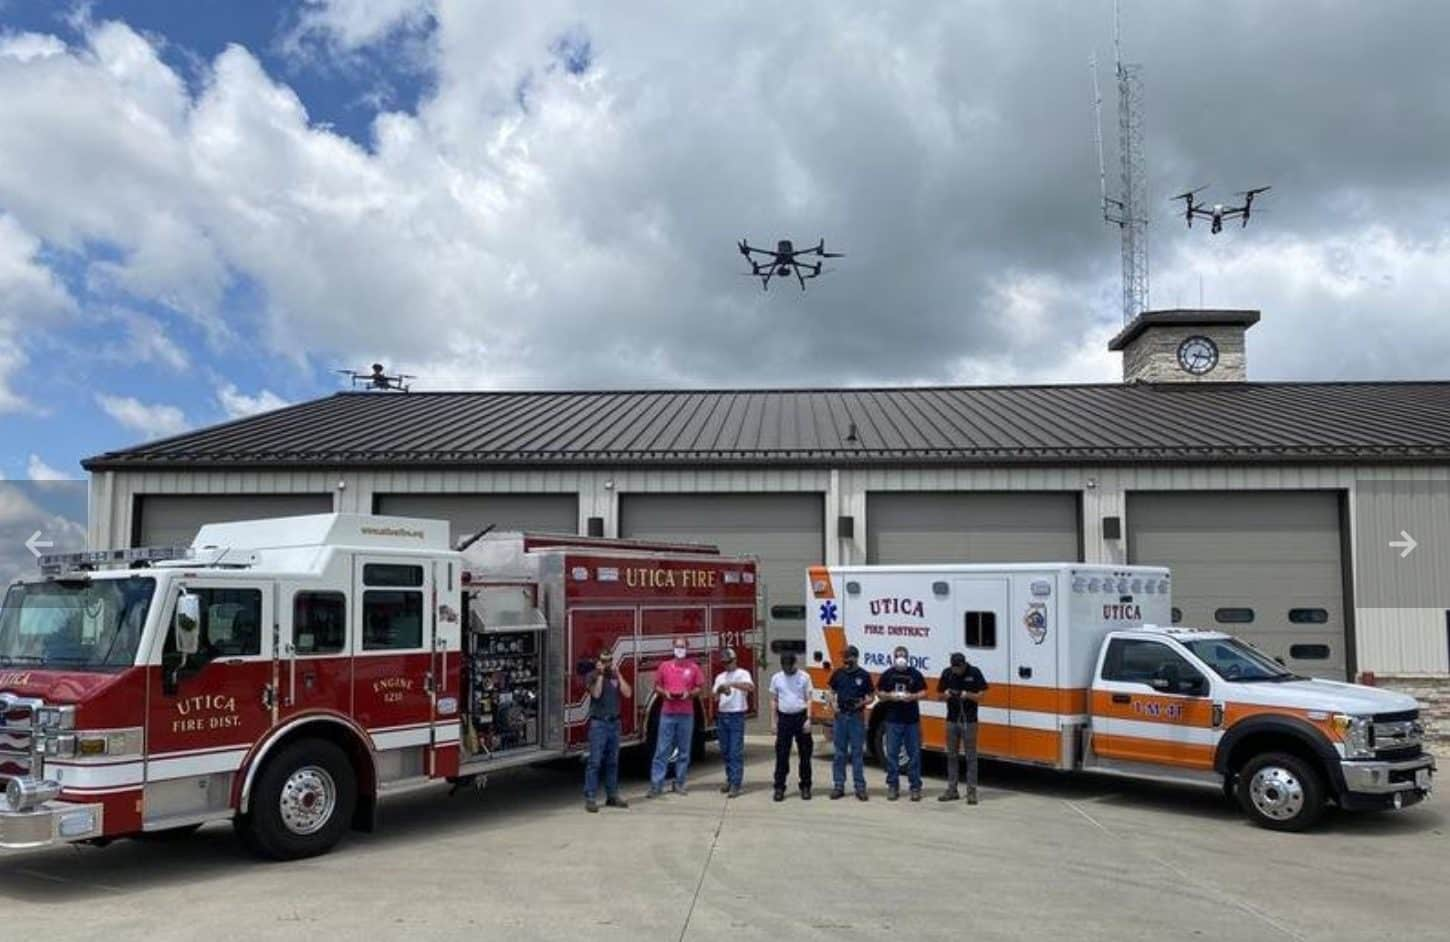 DJI M300 RTK with Zenmuse H20T bought by Utica Fire Protection District